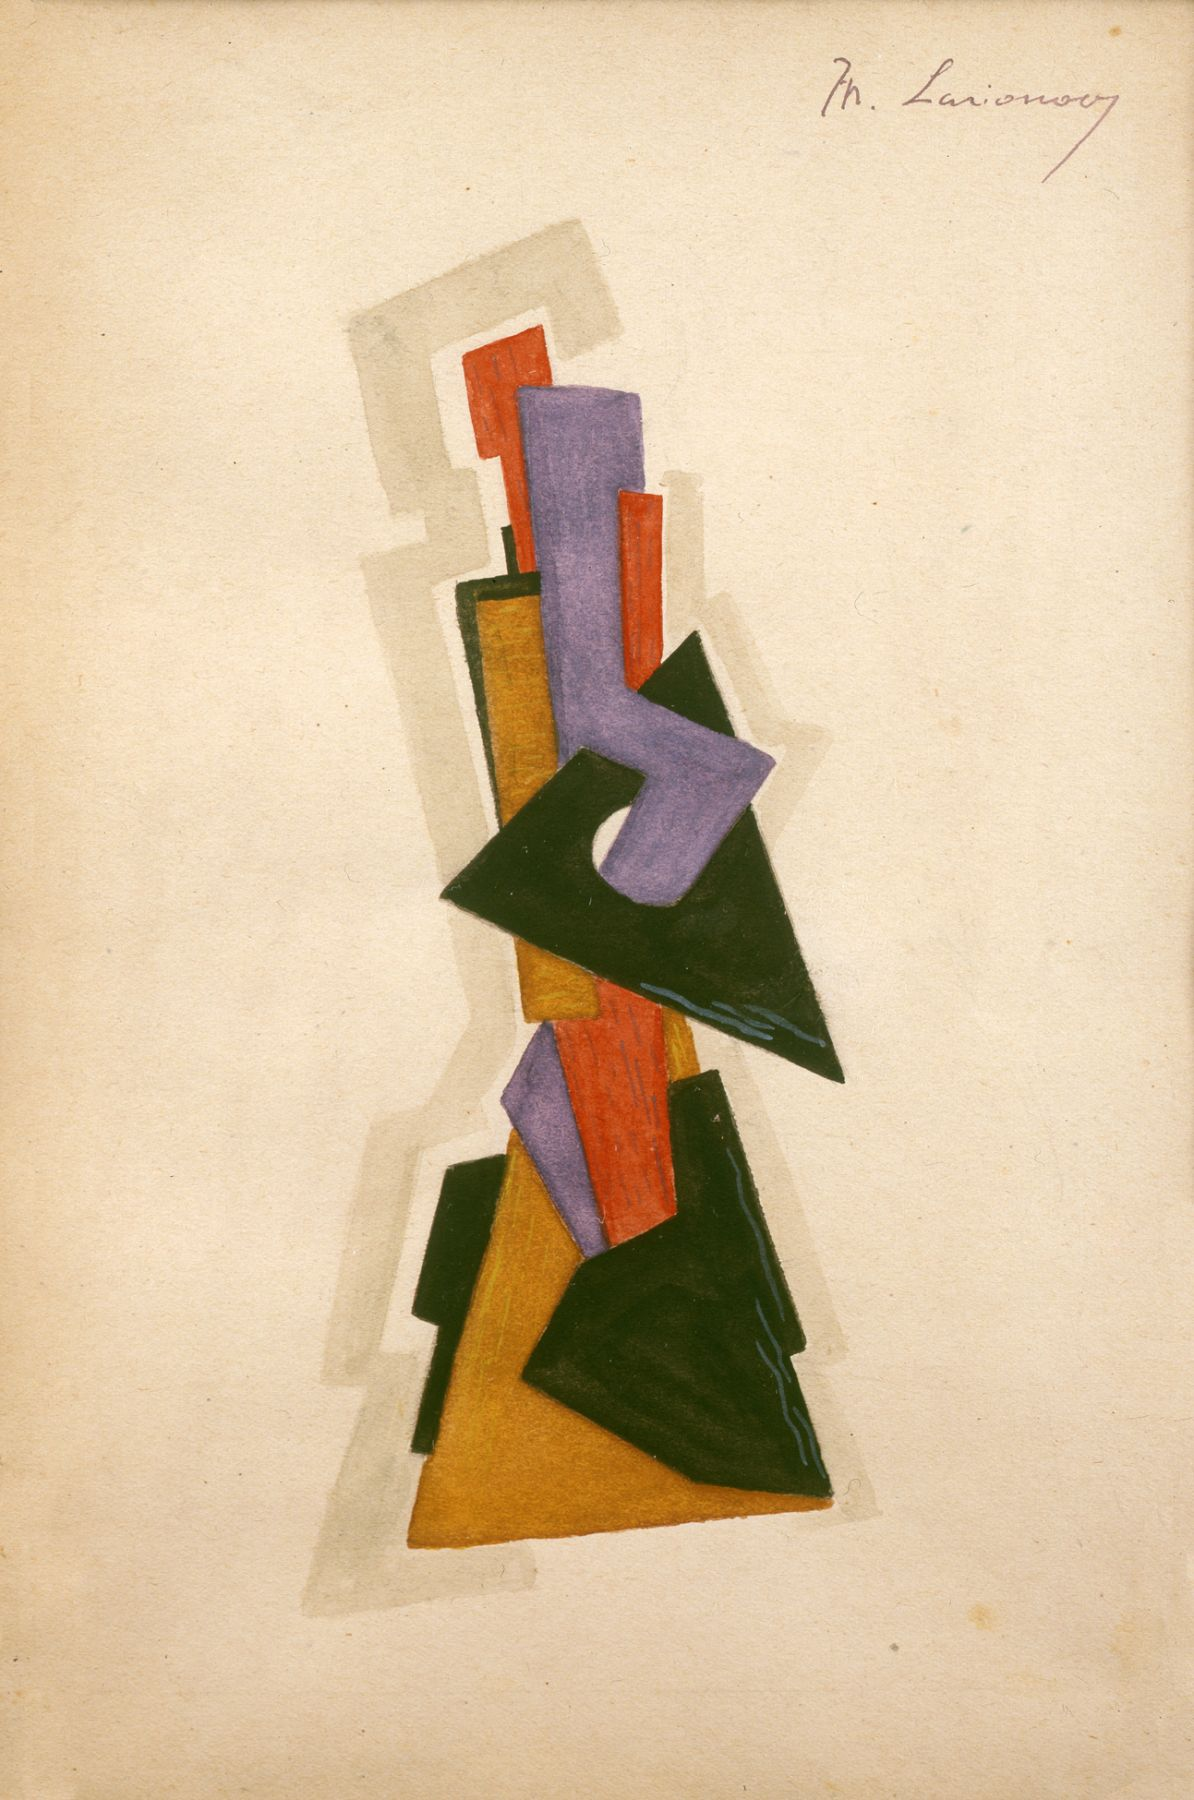 Mikhail Larionov, Design for Shadow Puppet, c. 1917-23, gouache and pencil on paper, 9 x 6 inches